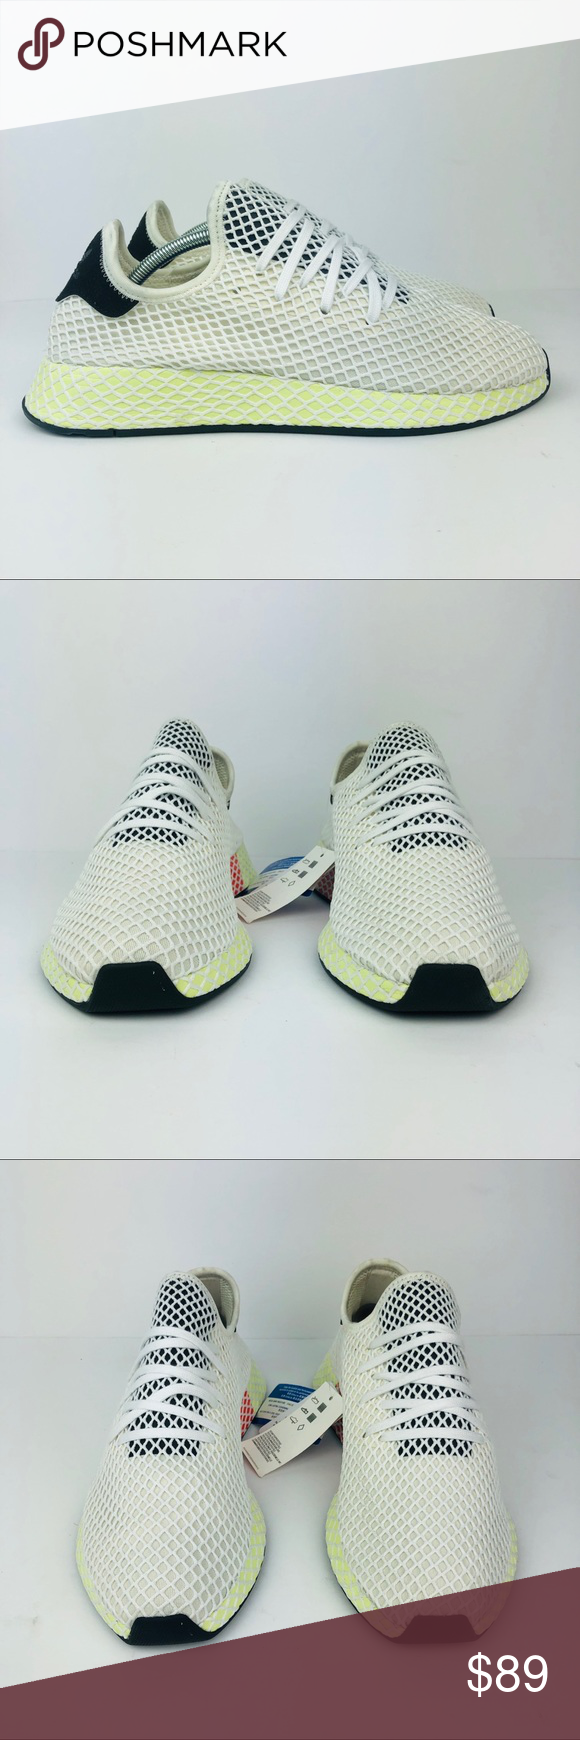 Size 10.5 CQ2629 adidas Shoes Sneakers